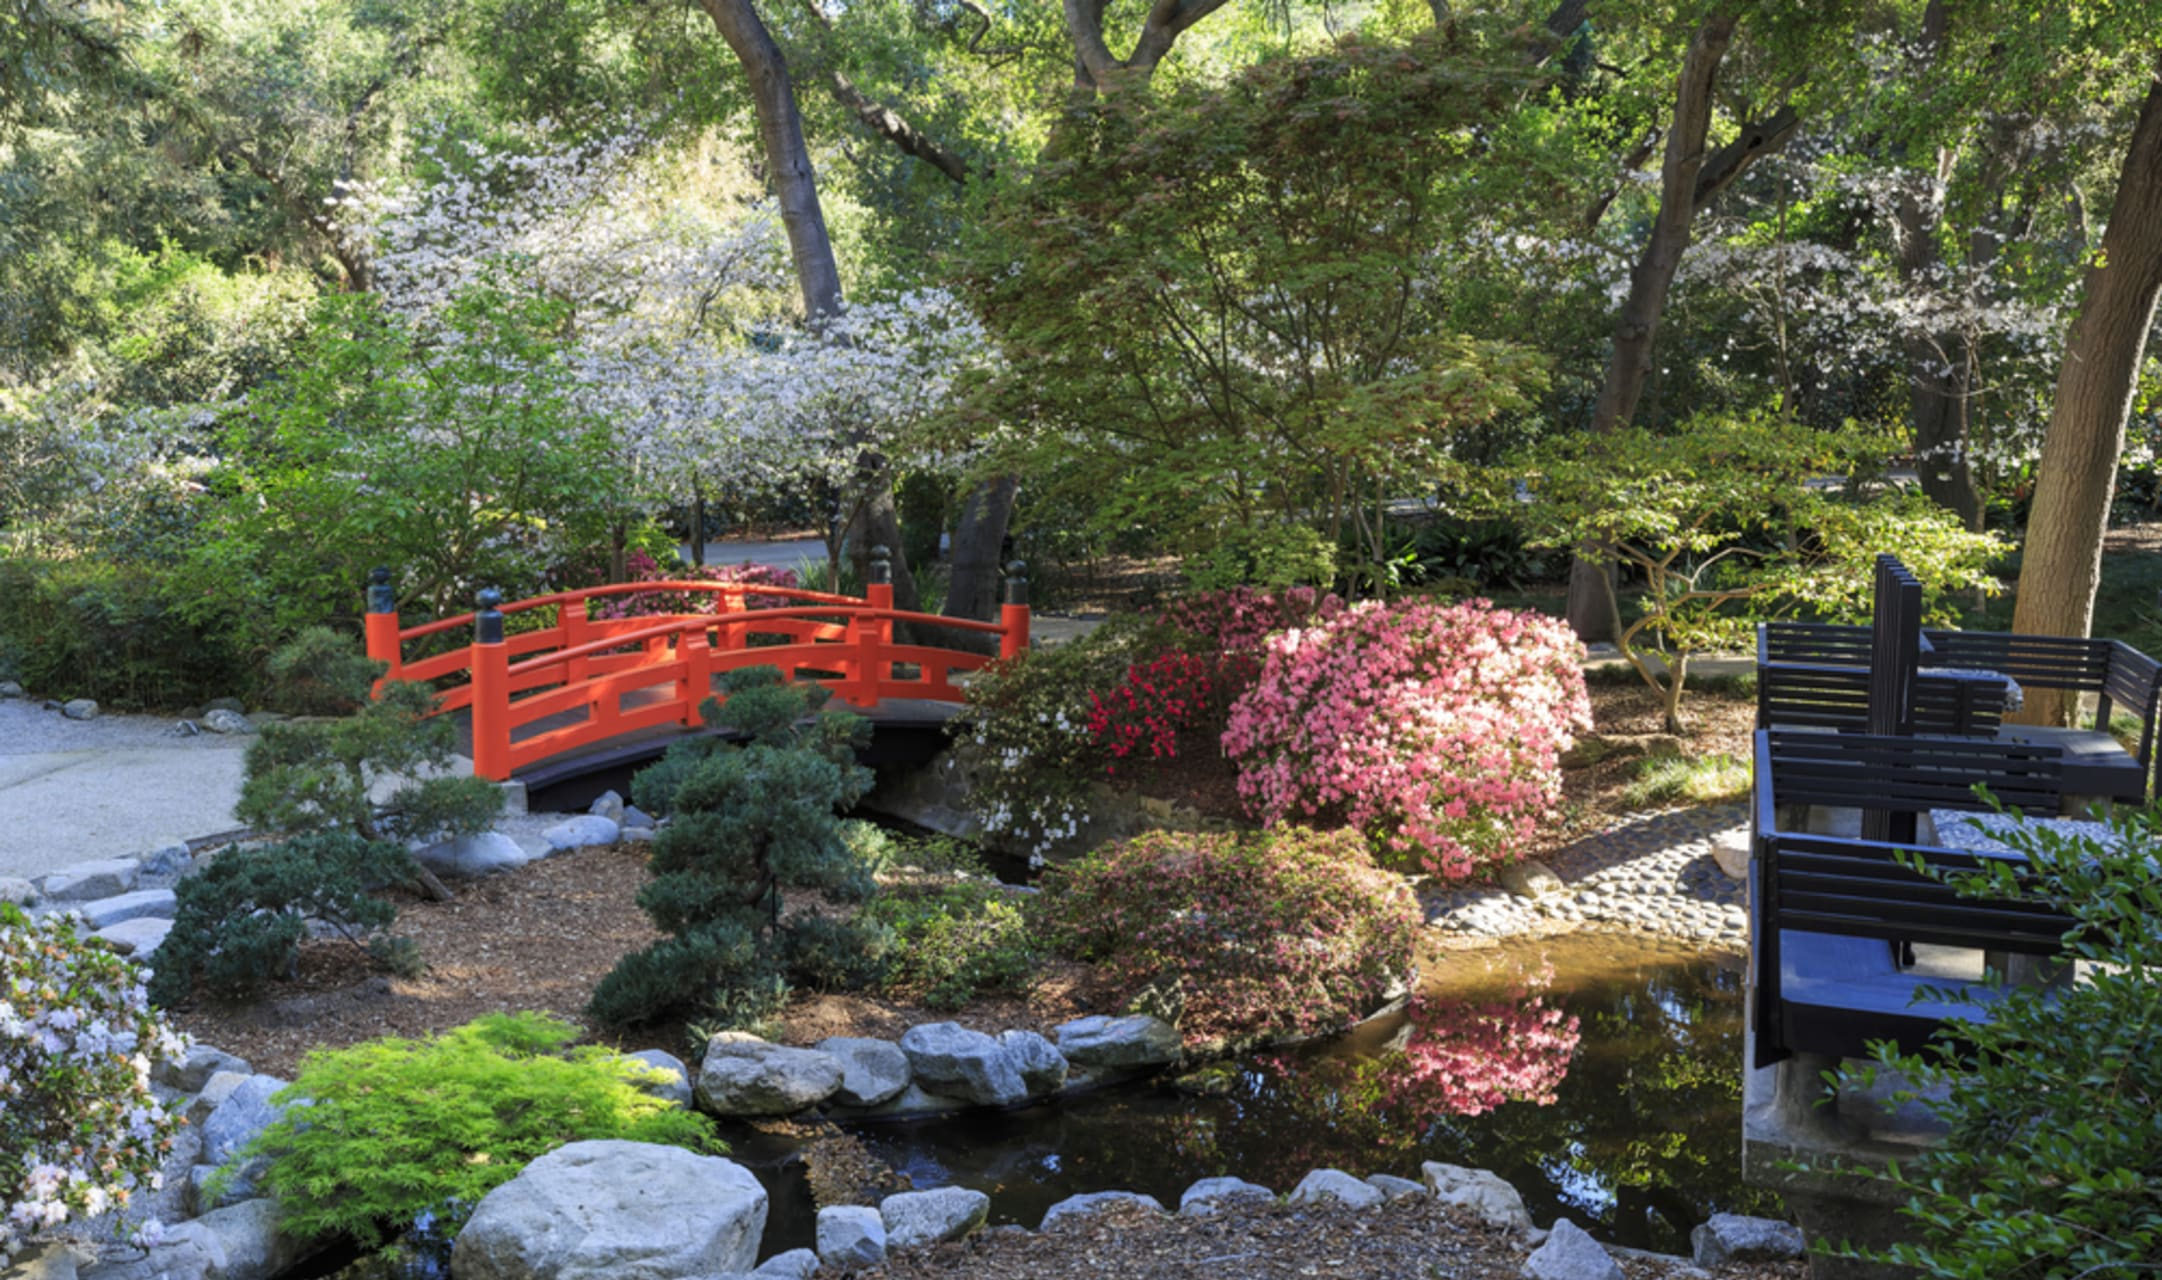 Los Angeles - Gardens of Los Angeles: The Camellia Forest